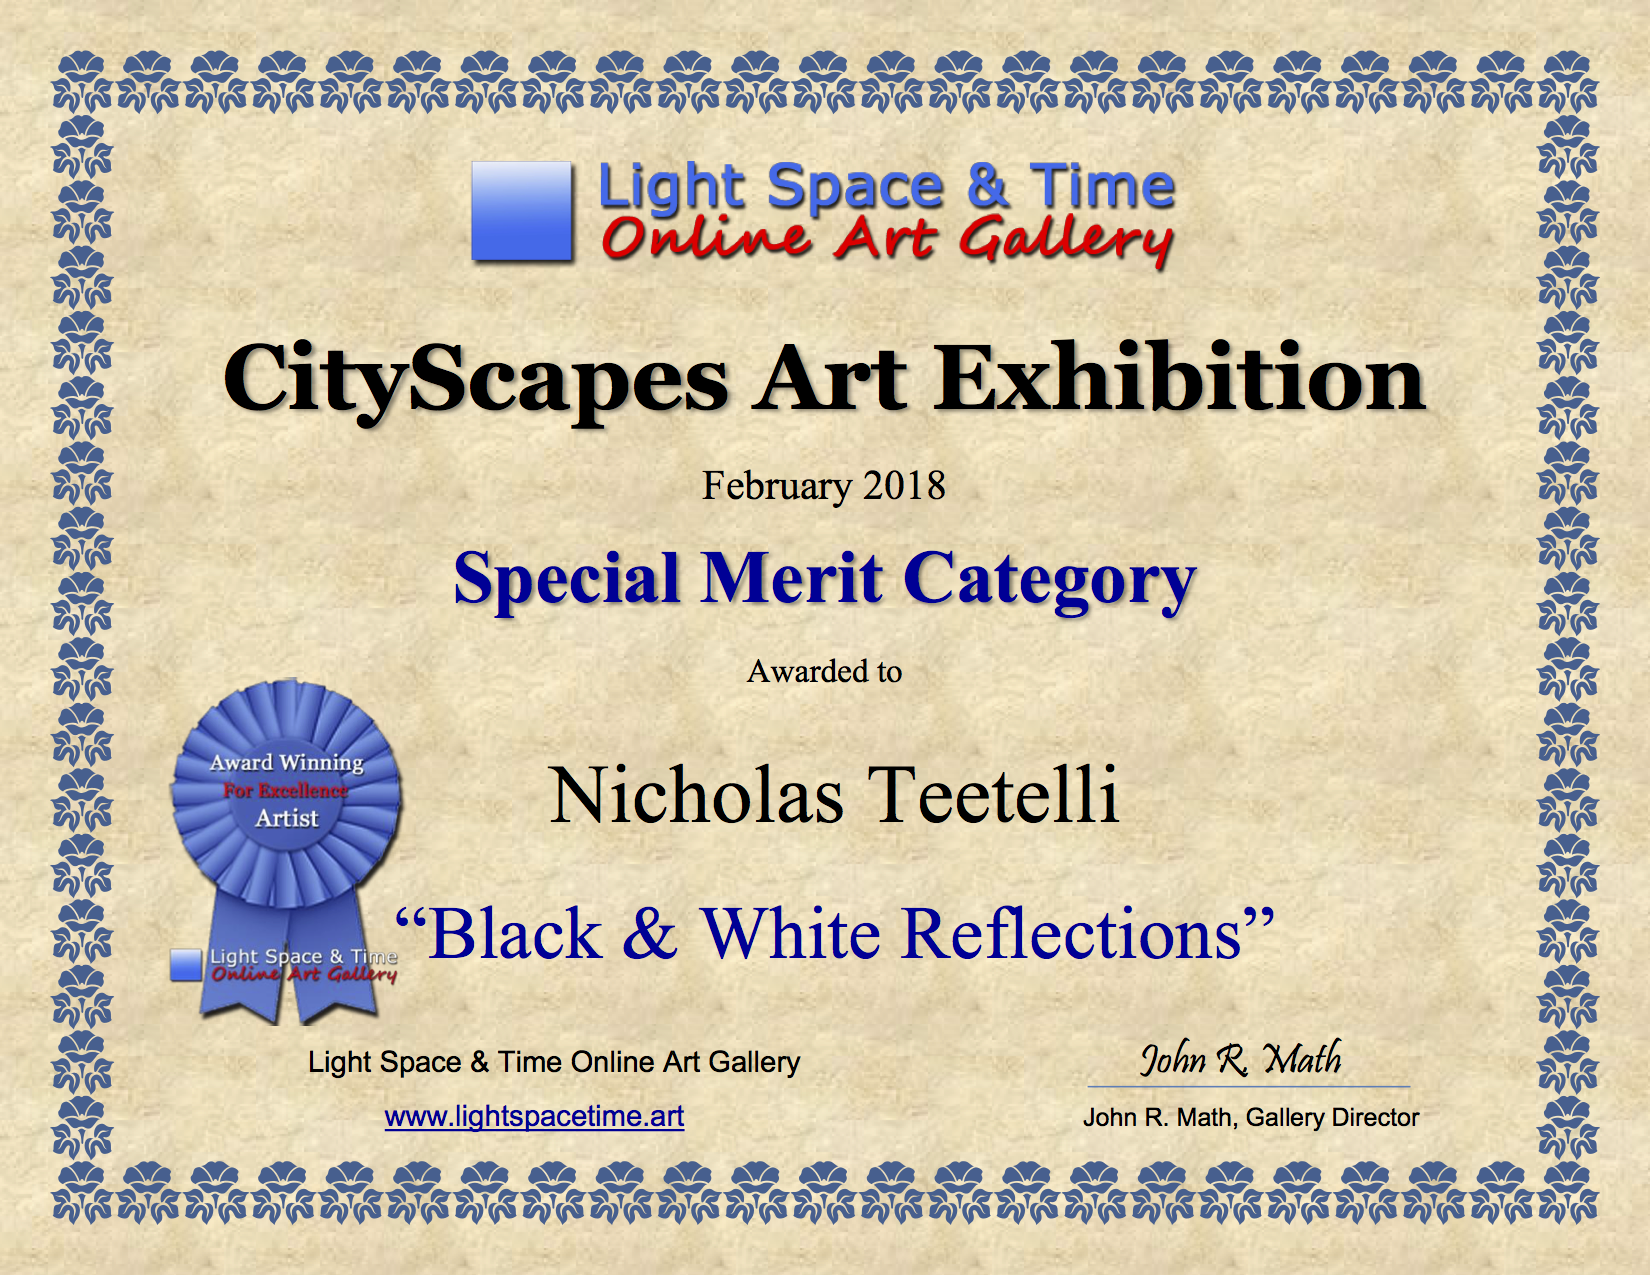 2018-02 LS&T SM - Cityscapes Art Exhibition AWARD B&W Reflections.png